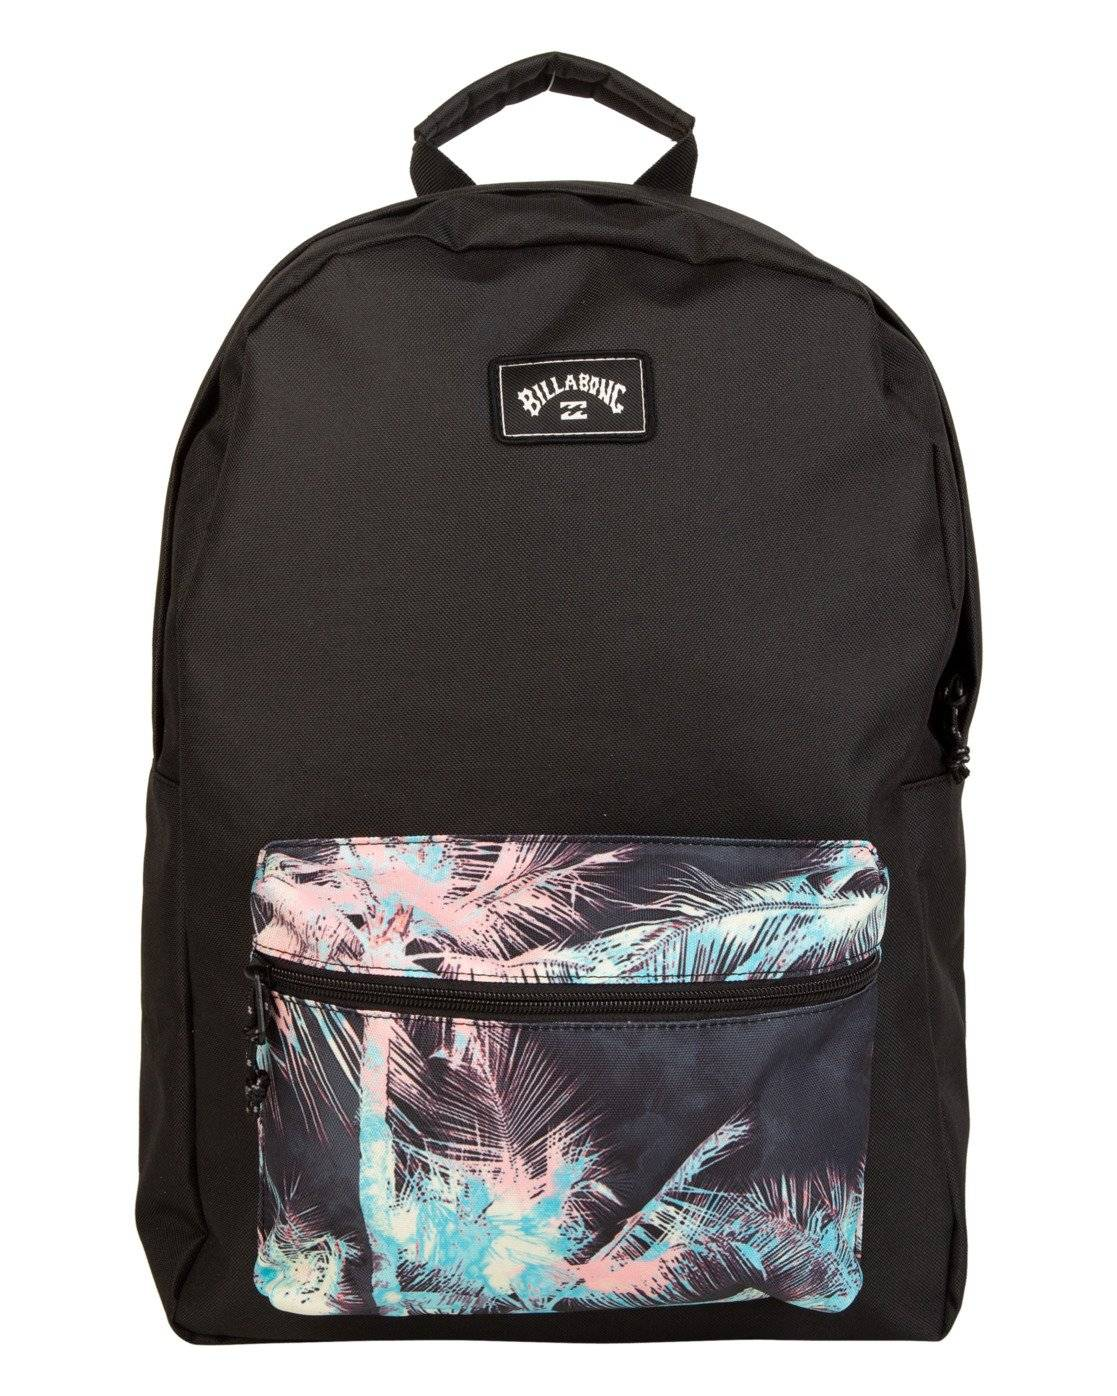 Billabong All Day Backpack  - Grey - Size: One Size